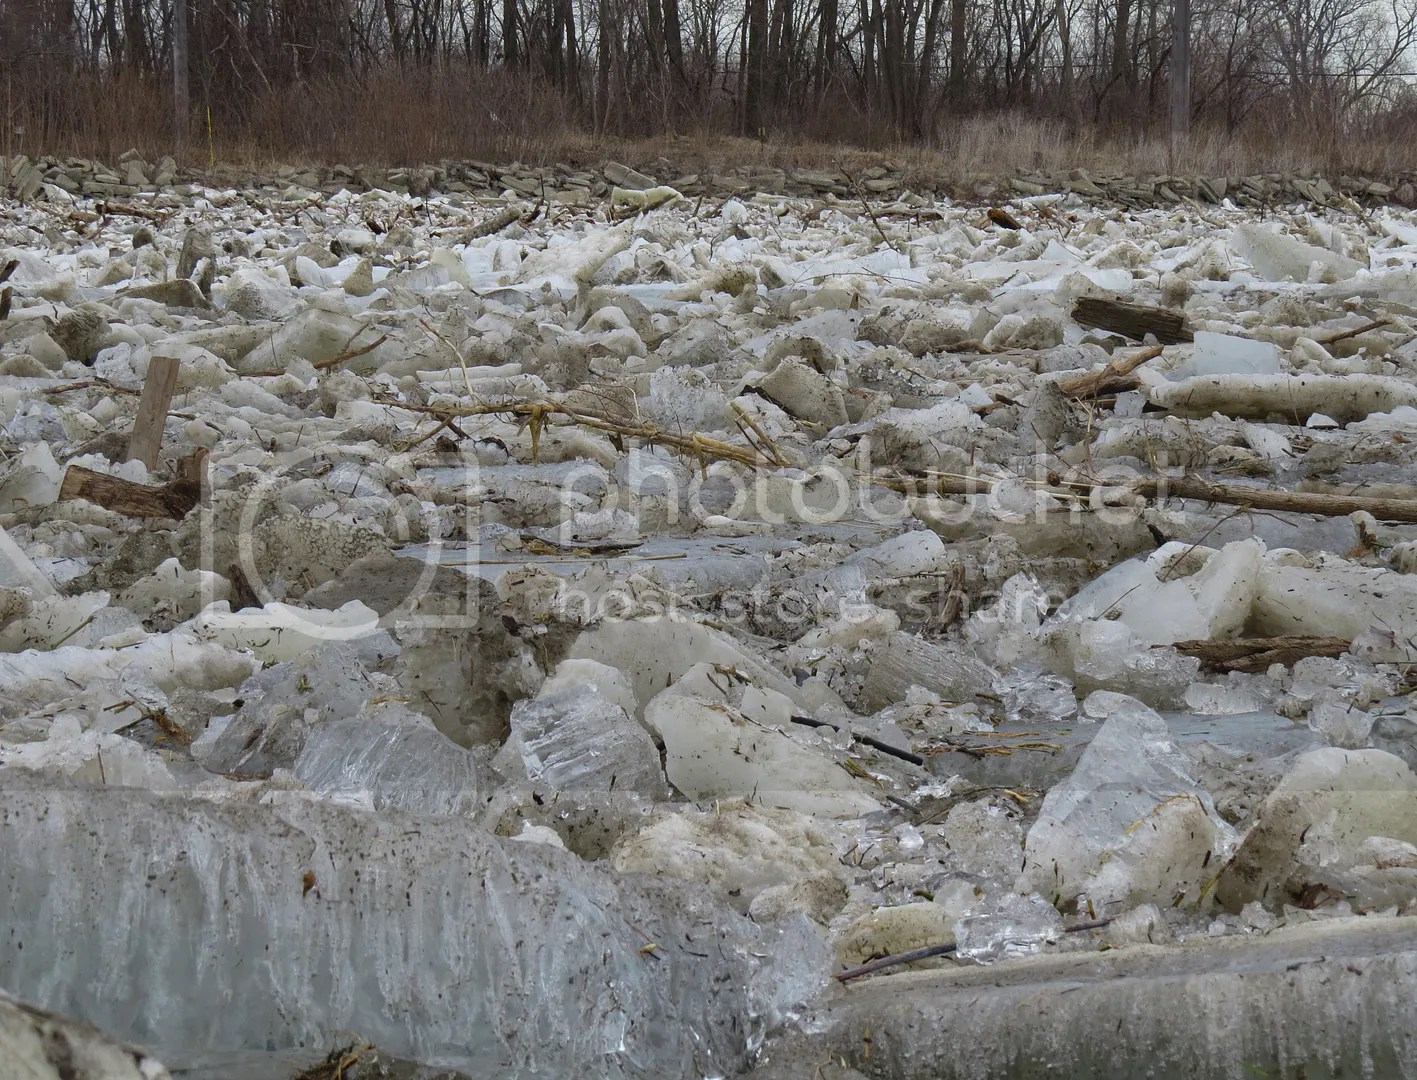 River Raisin Ice Jam 2015 photo 2115 River Raisin Ice Breakup 6_zpsfs4wdxqd.jpg